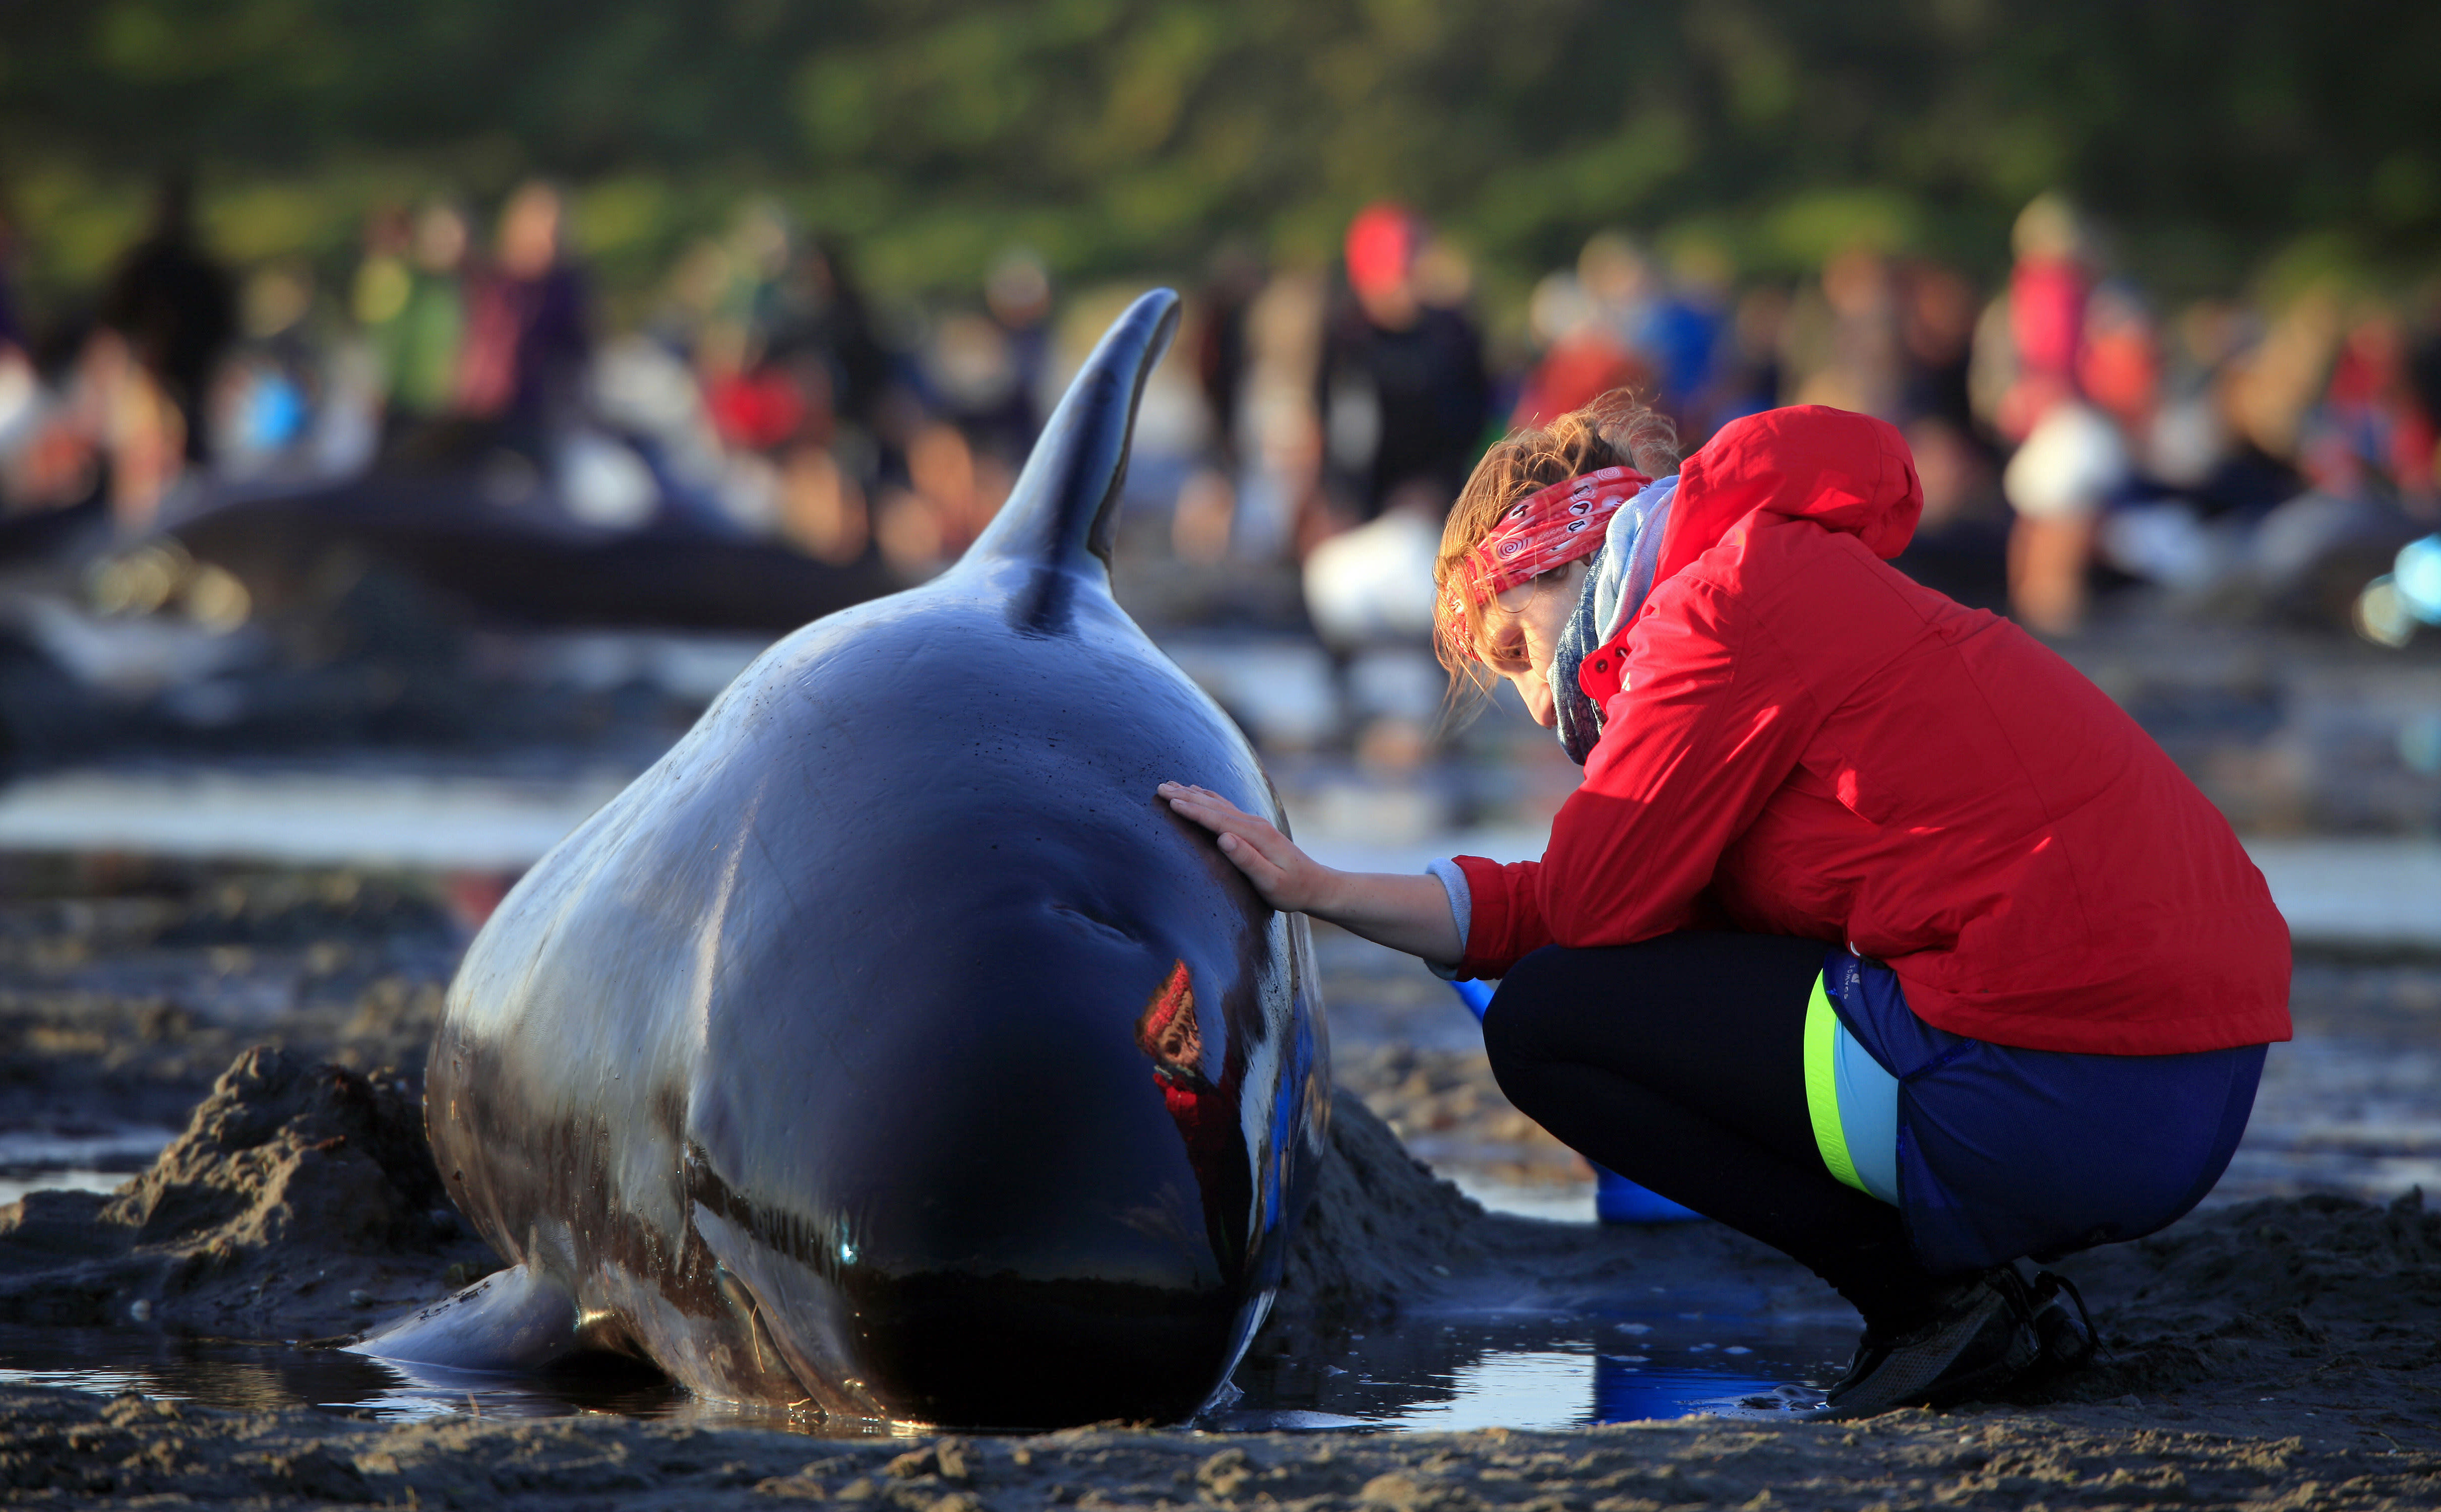 <p> In this Friday, Feb 10, 2017 photo, German visitor Lea Stubbe rubs water on a pilot whale that beached itself at the remote Farewell Spit on the tip of the South Island of New Zealand. Volunteers in New Zealand managed to refloat about 100 surviving pilot whales on Saturday, Feb. 11, 2017 and are hoping they will swim back out to sea after more than 400 of the creatures swam aground at a remote beach. (Tim Cuff/New Zealand Herald via AP) </p>